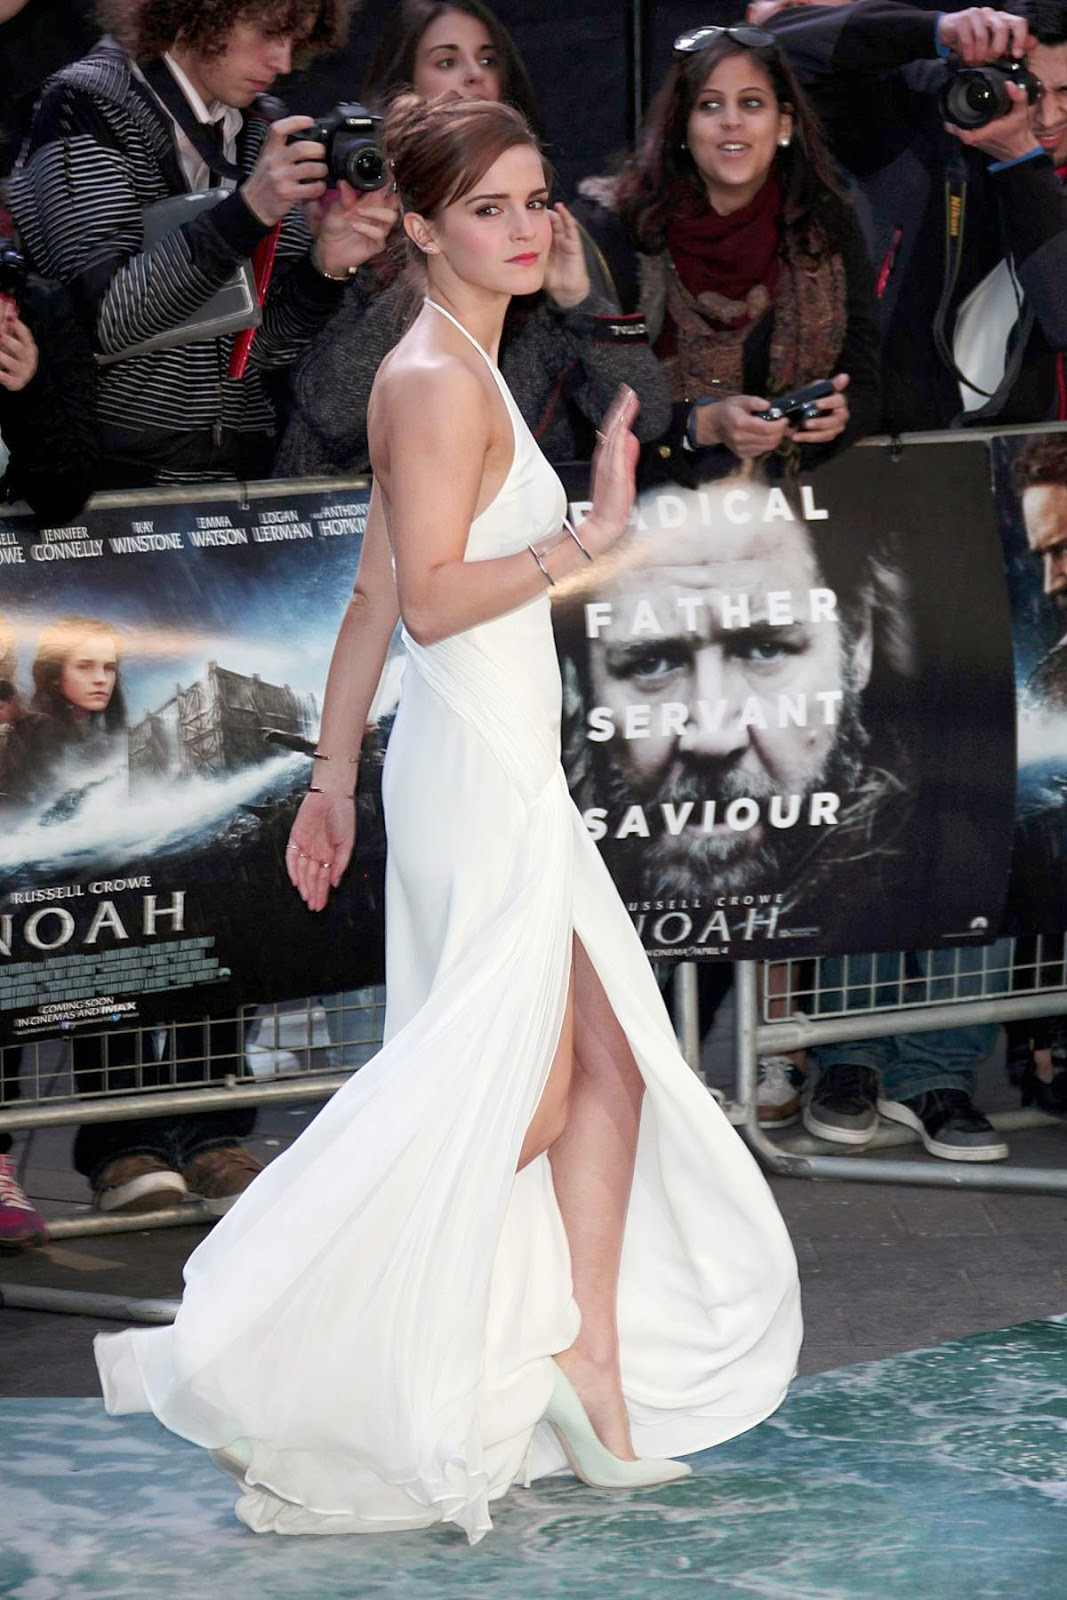 high quality bollywood celebrity pictures  emma watson